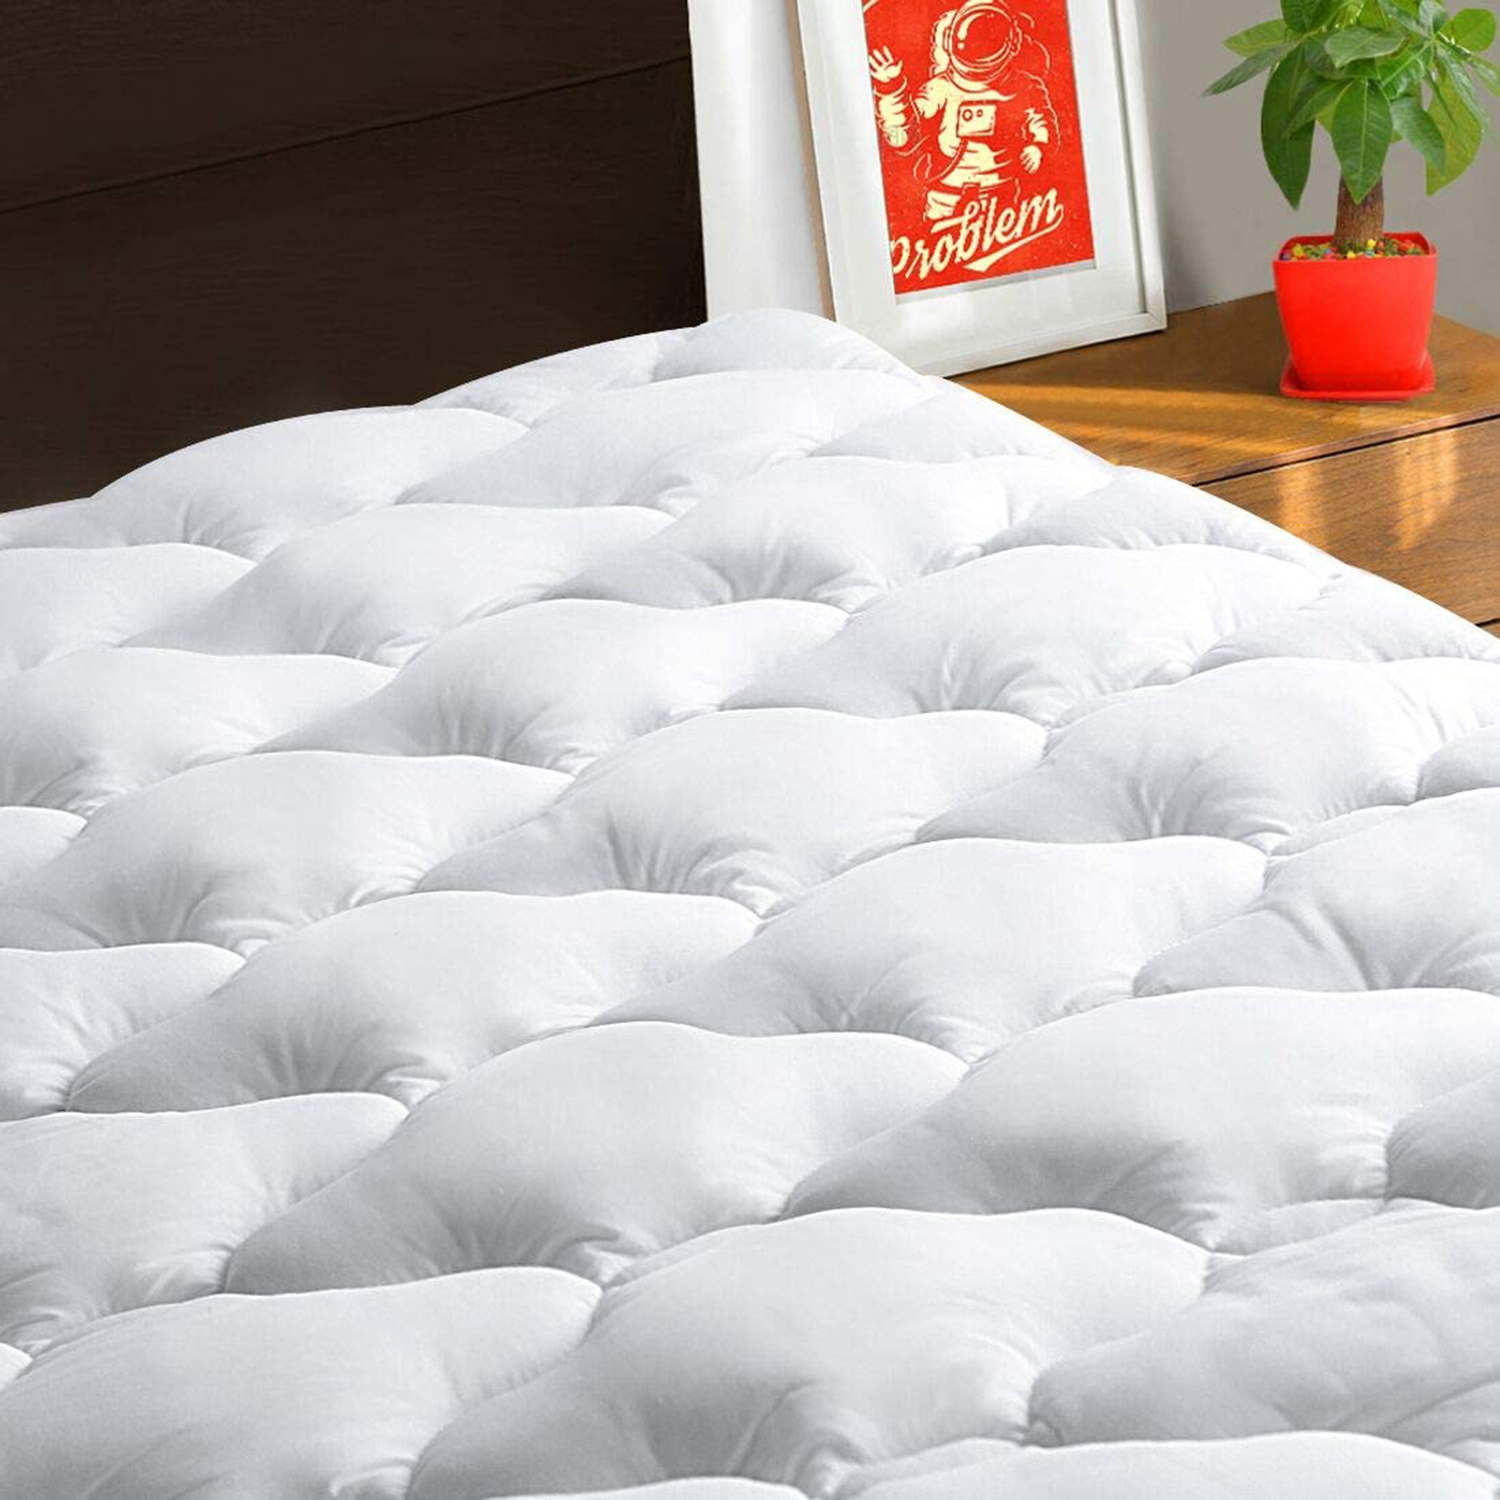 TEXARTIST Queen Mattress Pad Cover Cooling